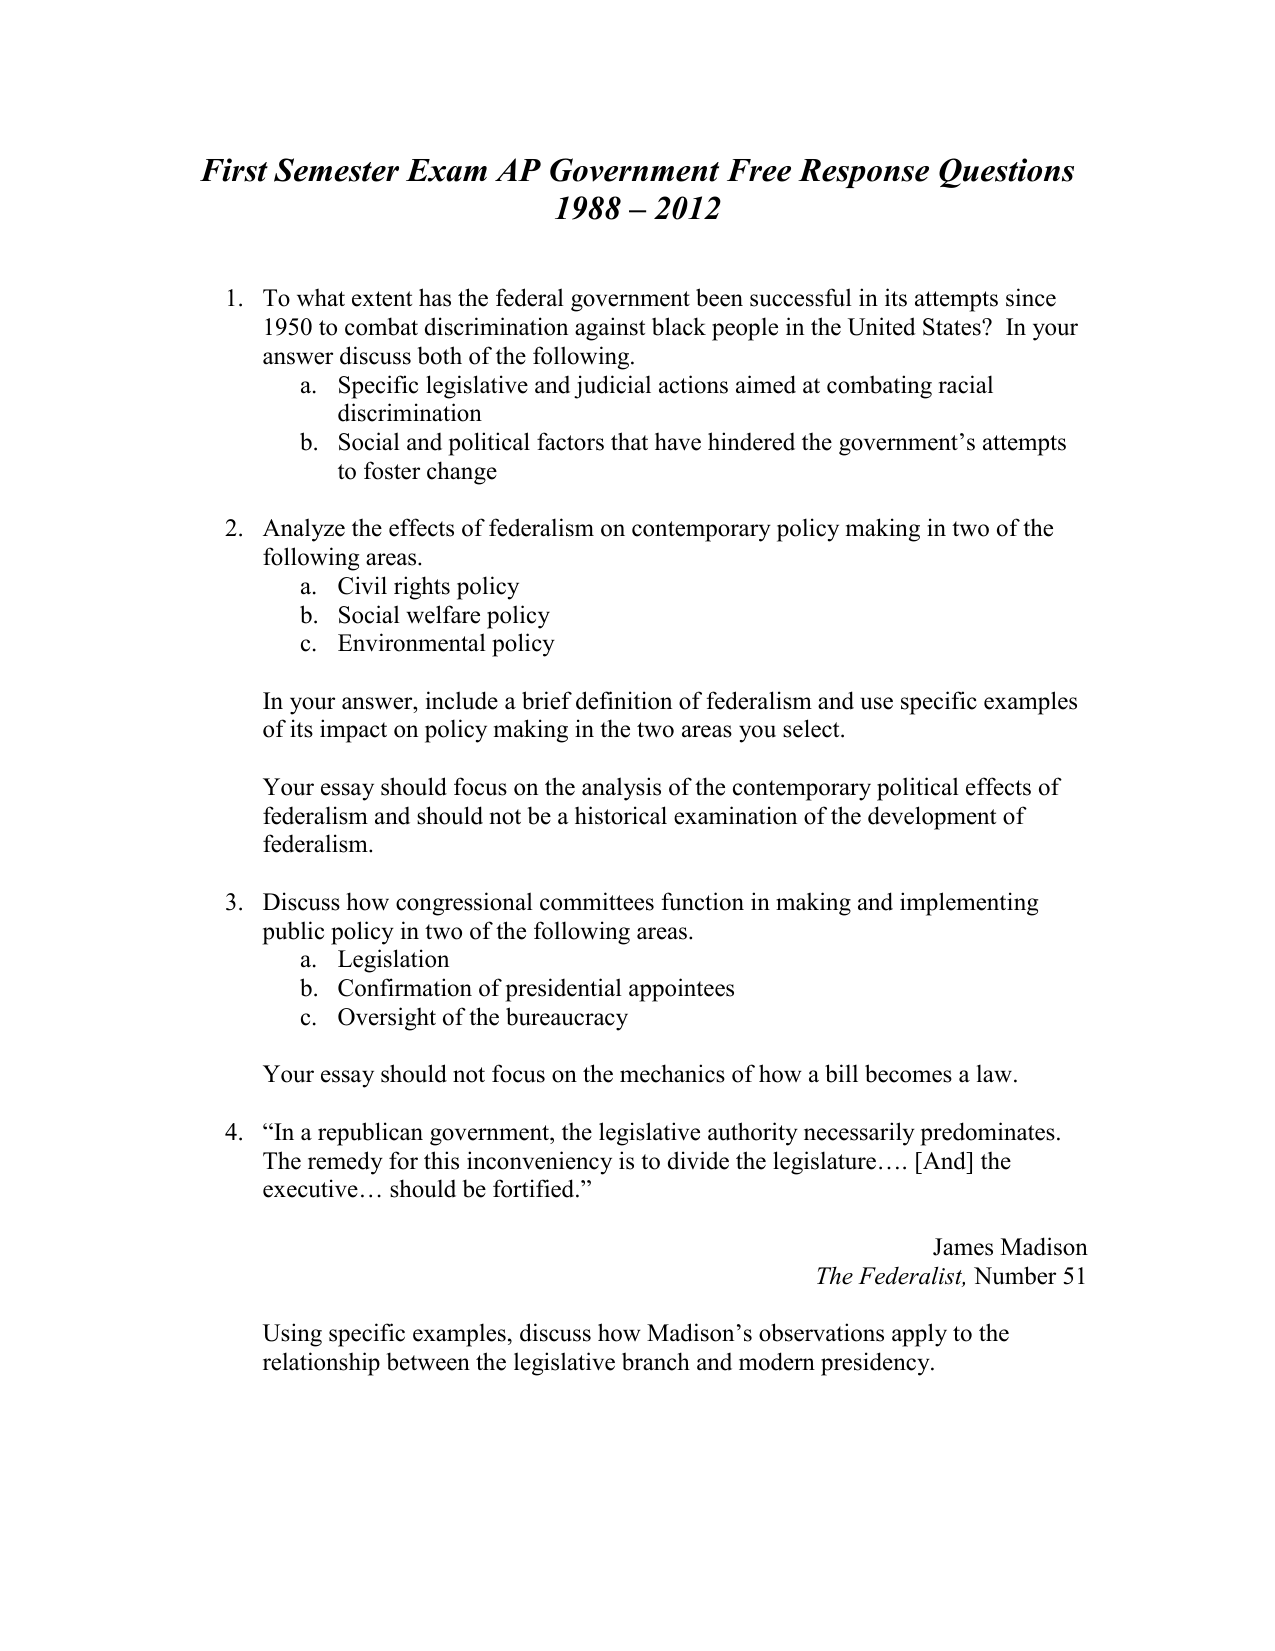 First Semester Exam Ap Government Free Response Questions